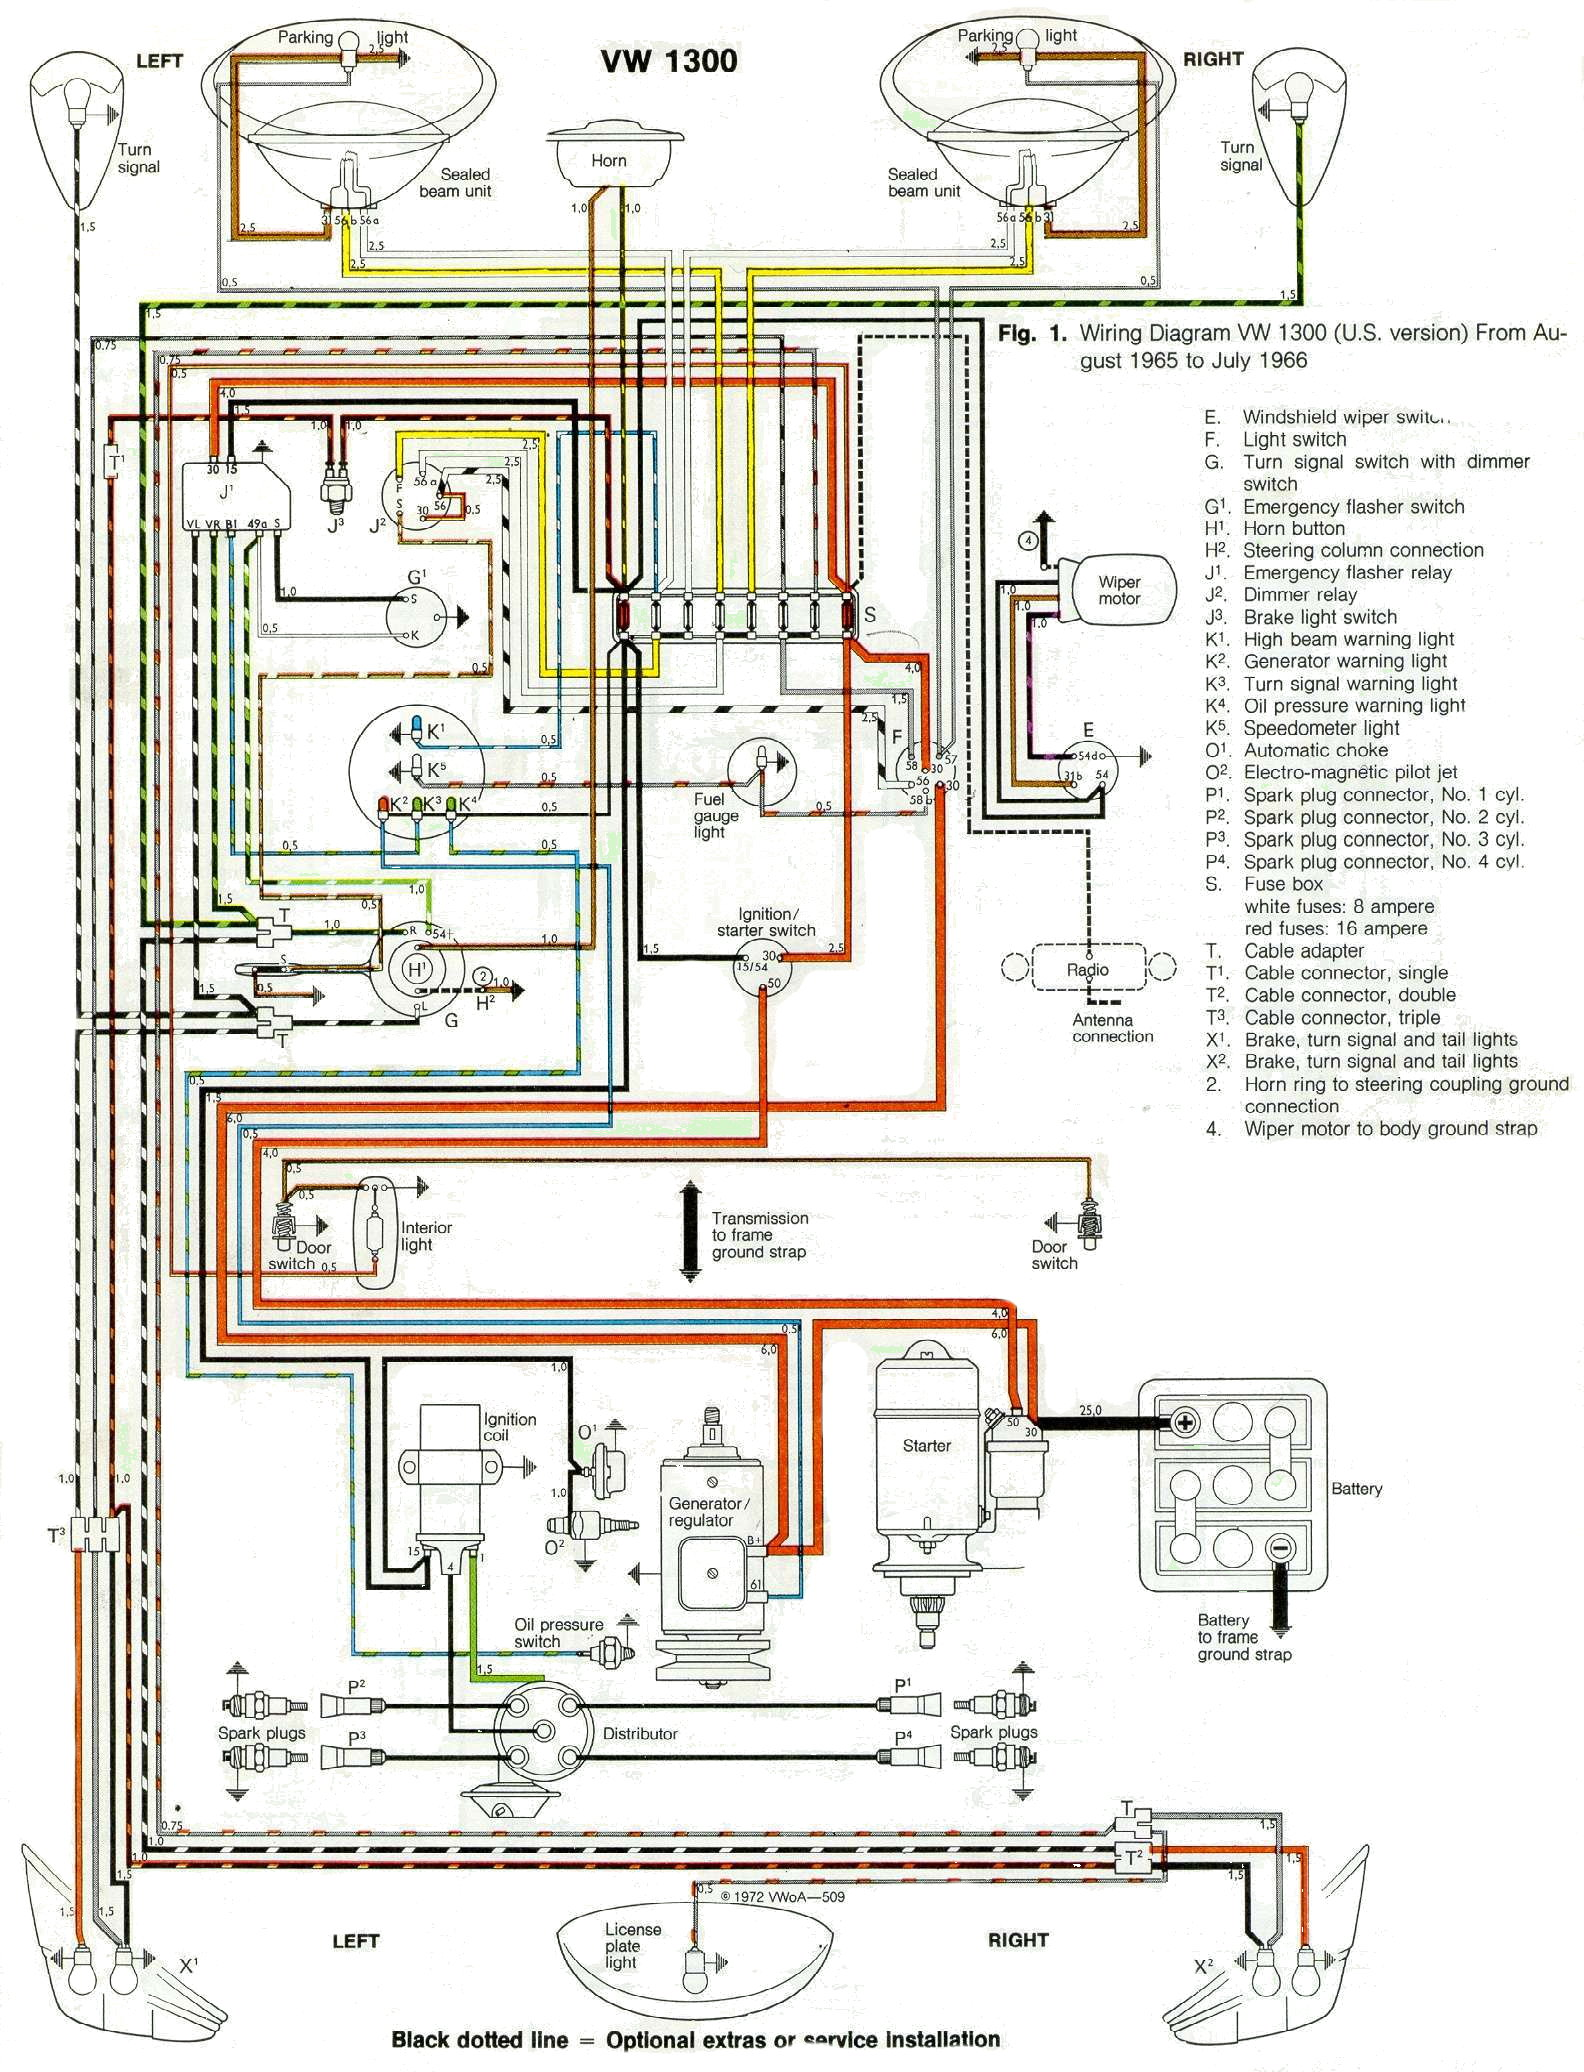 1966 Wiring 1966 wiring diagram vw bug wiring diagram at arjmand.co